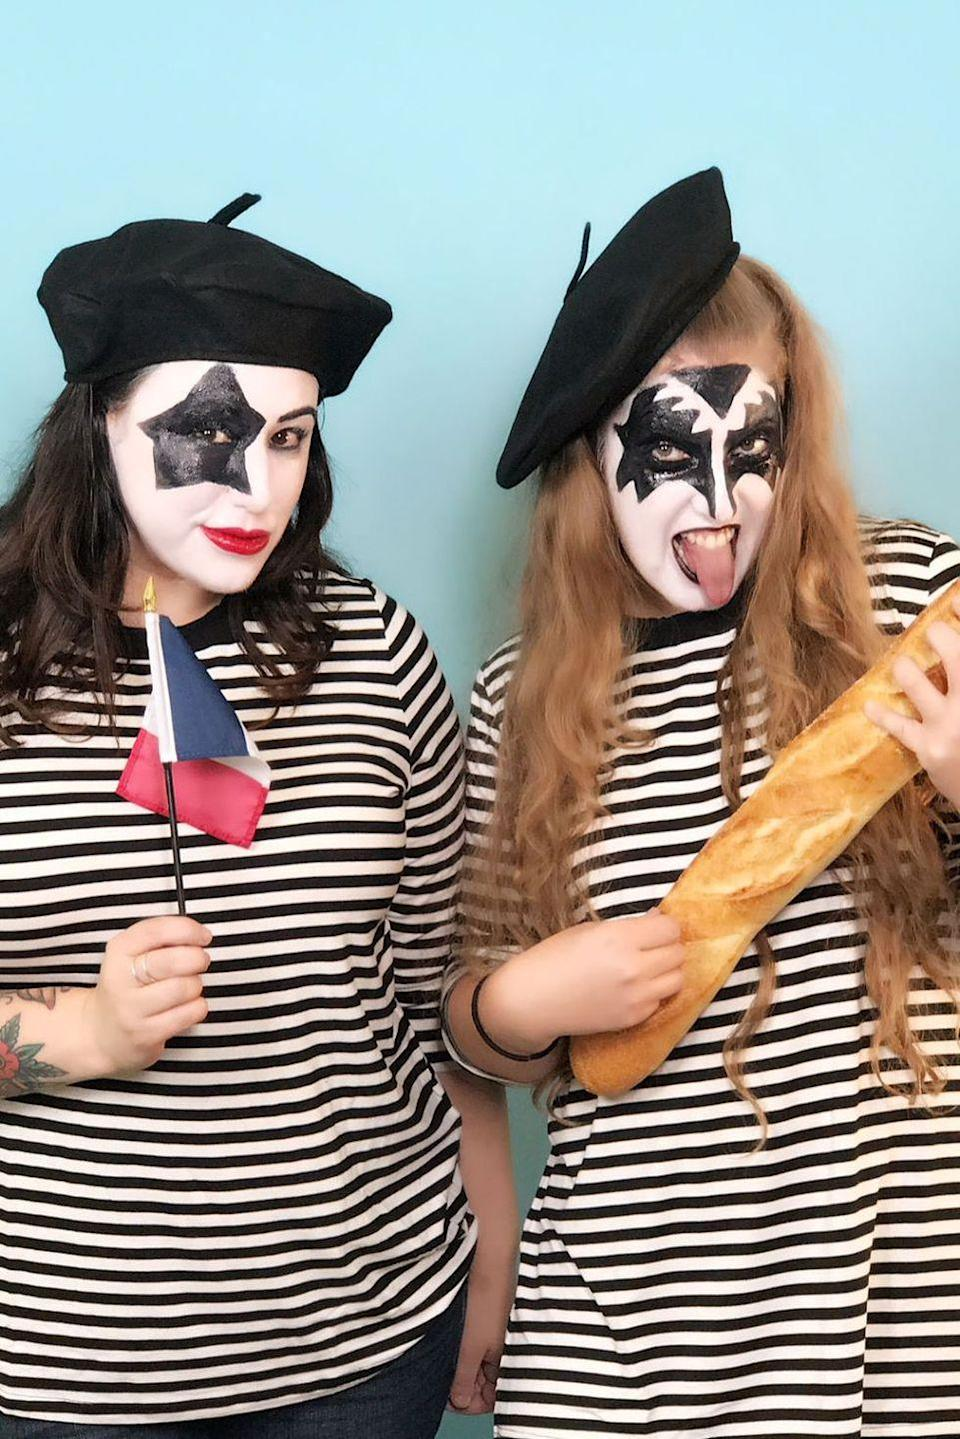 """<p>Anyone with a striped shirt and beret can easy achieve this <a href=""""https://www.countryliving.com/diy-crafts/g22216730/pun-costumes/"""" rel=""""nofollow noopener"""" target=""""_blank"""" data-ylk=""""slk:punny costume idea"""" class=""""link rapid-noclick-resp"""">punny costume idea</a>.</p><p><strong>Get the tutorial at <a href=""""https://www.goodhousekeeping.com/holidays/halloween-ideas/g3848/pun-halloween-costume-ideas/?slide=2"""" rel=""""nofollow noopener"""" target=""""_blank"""" data-ylk=""""slk:Good Housekeeping"""" class=""""link rapid-noclick-resp"""">Good Housekeeping</a>.</strong></p><p><a class=""""link rapid-noclick-resp"""" href=""""https://www.amazon.com/NYFASHION101-French-Lightweight-Casual-Classic/dp/B00MHX5UVW/?tag=syn-yahoo-20&ascsubtag=%5Bartid%7C10050.g.23785711%5Bsrc%7Cyahoo-us"""" rel=""""nofollow noopener"""" target=""""_blank"""" data-ylk=""""slk:SHOP BERETS"""">SHOP BERETS</a> </p>"""